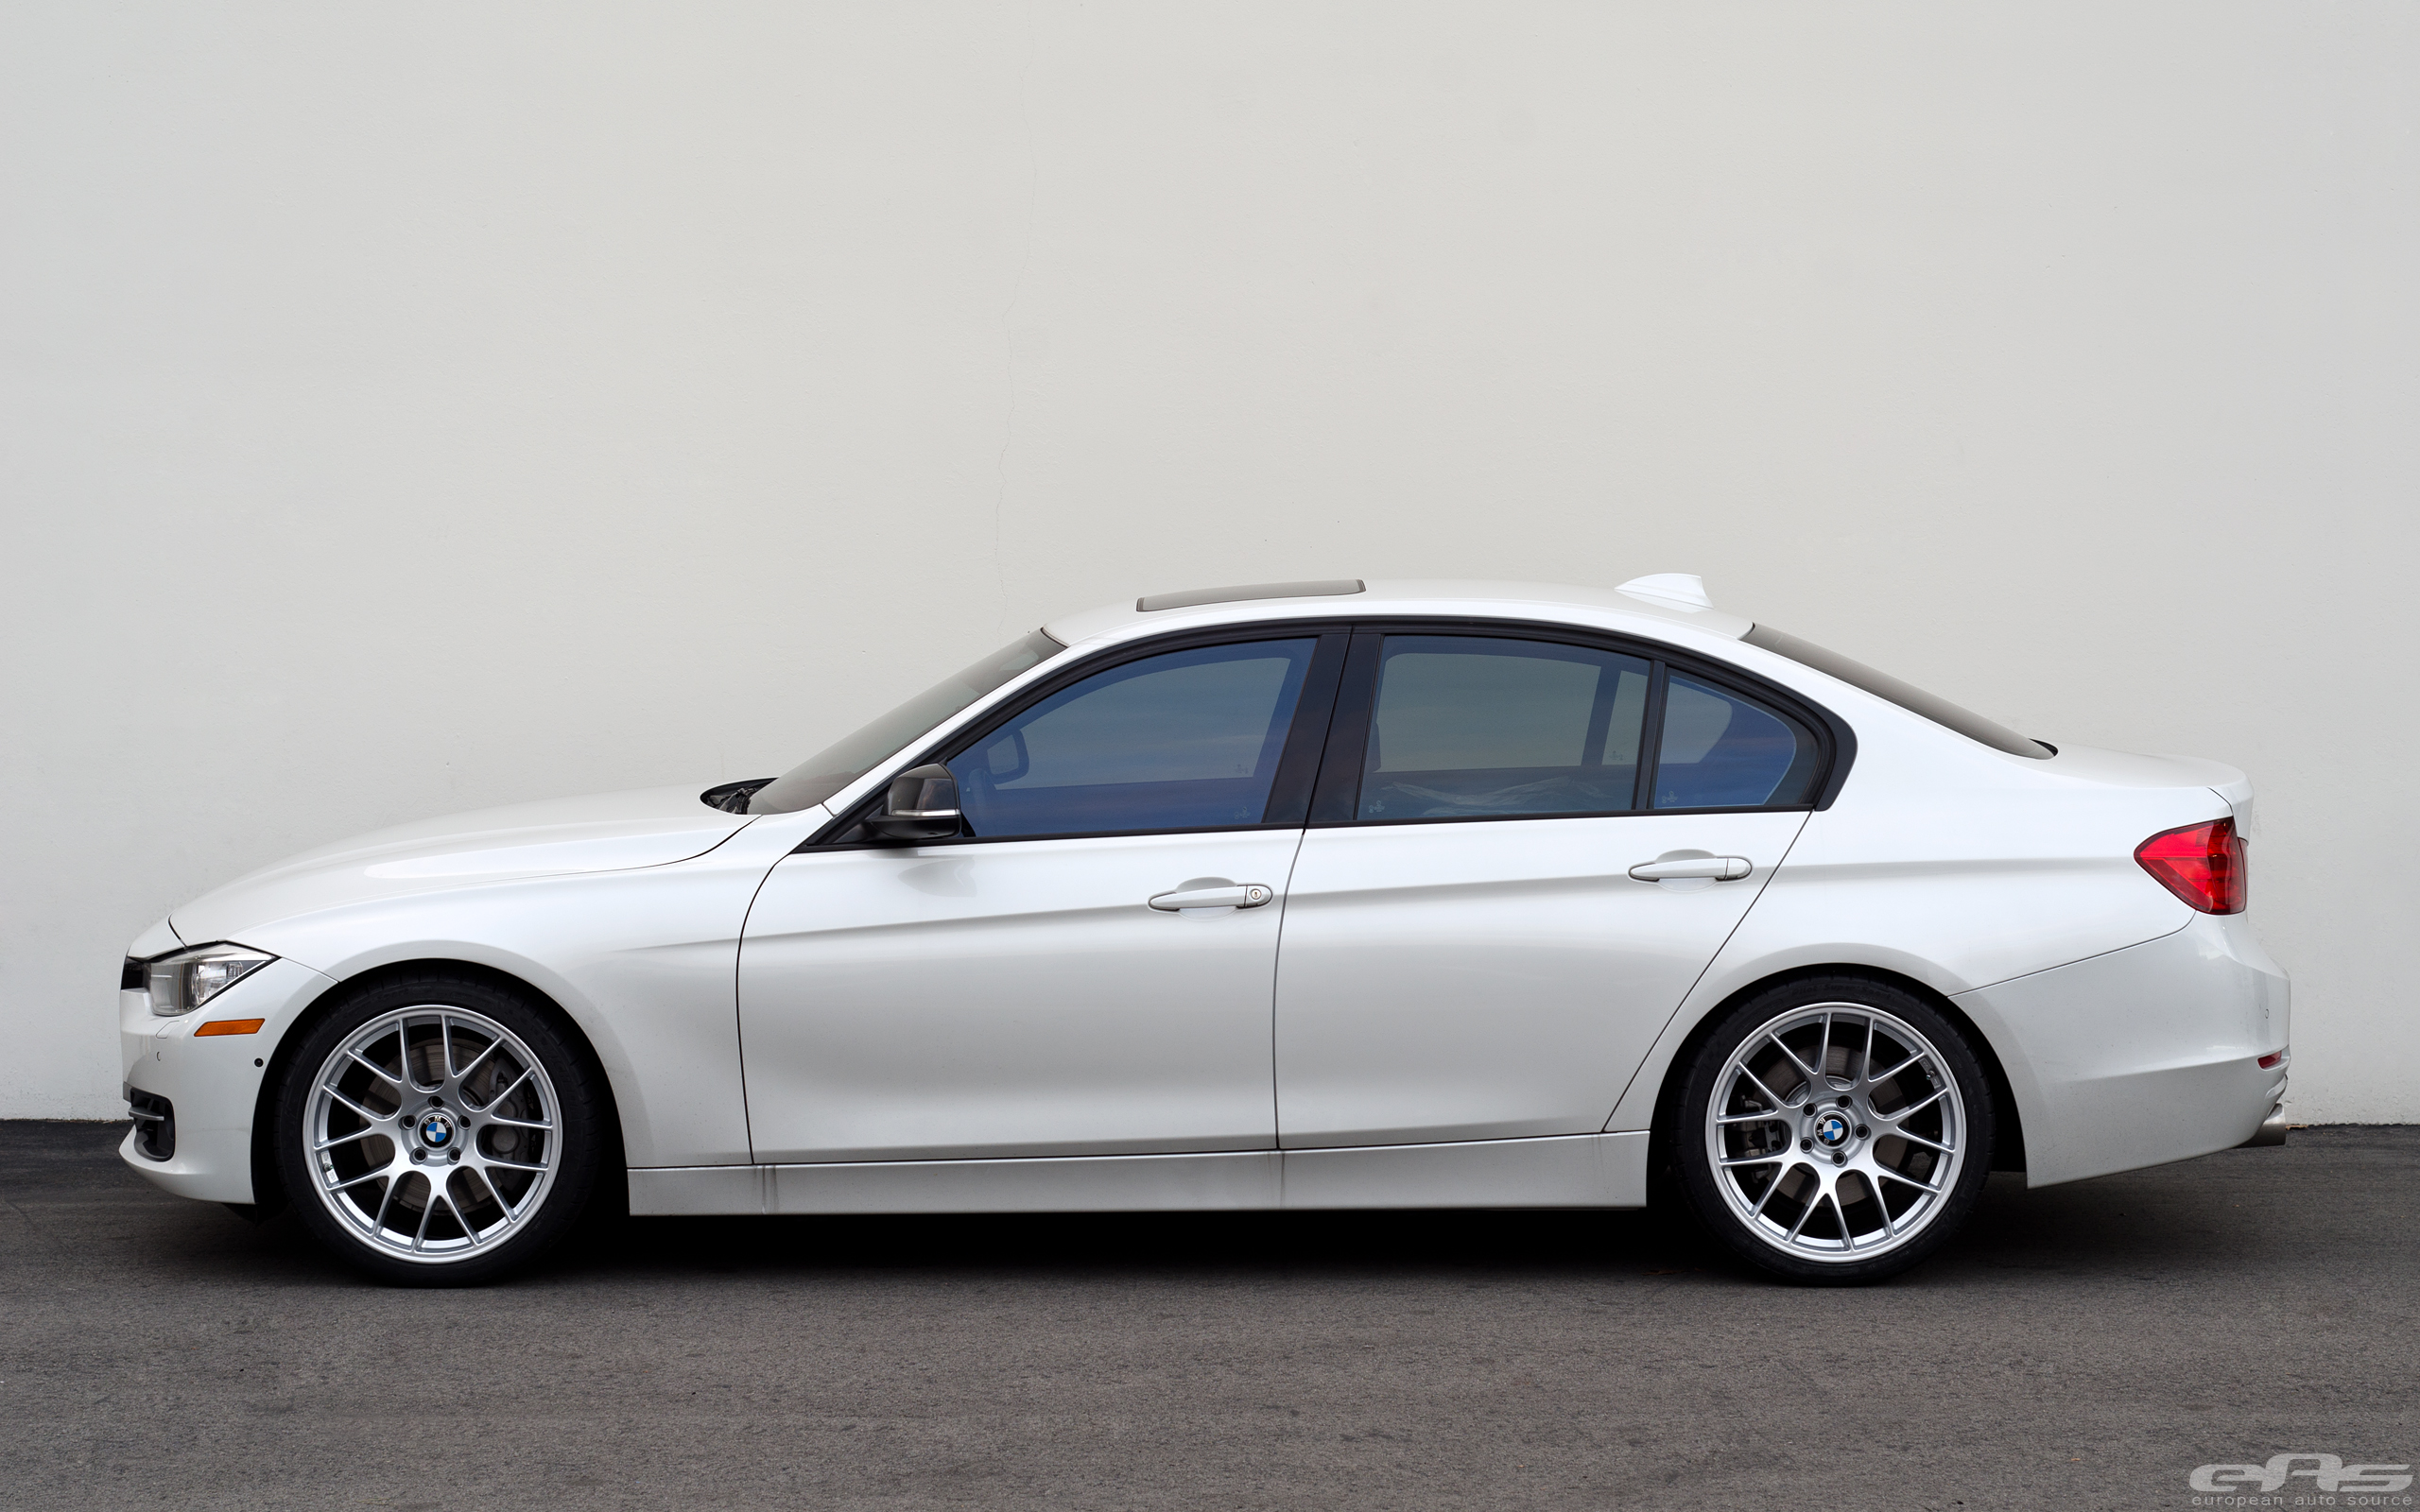 apex ec 7 wheels installed on a mineral white f30 bmw. Black Bedroom Furniture Sets. Home Design Ideas